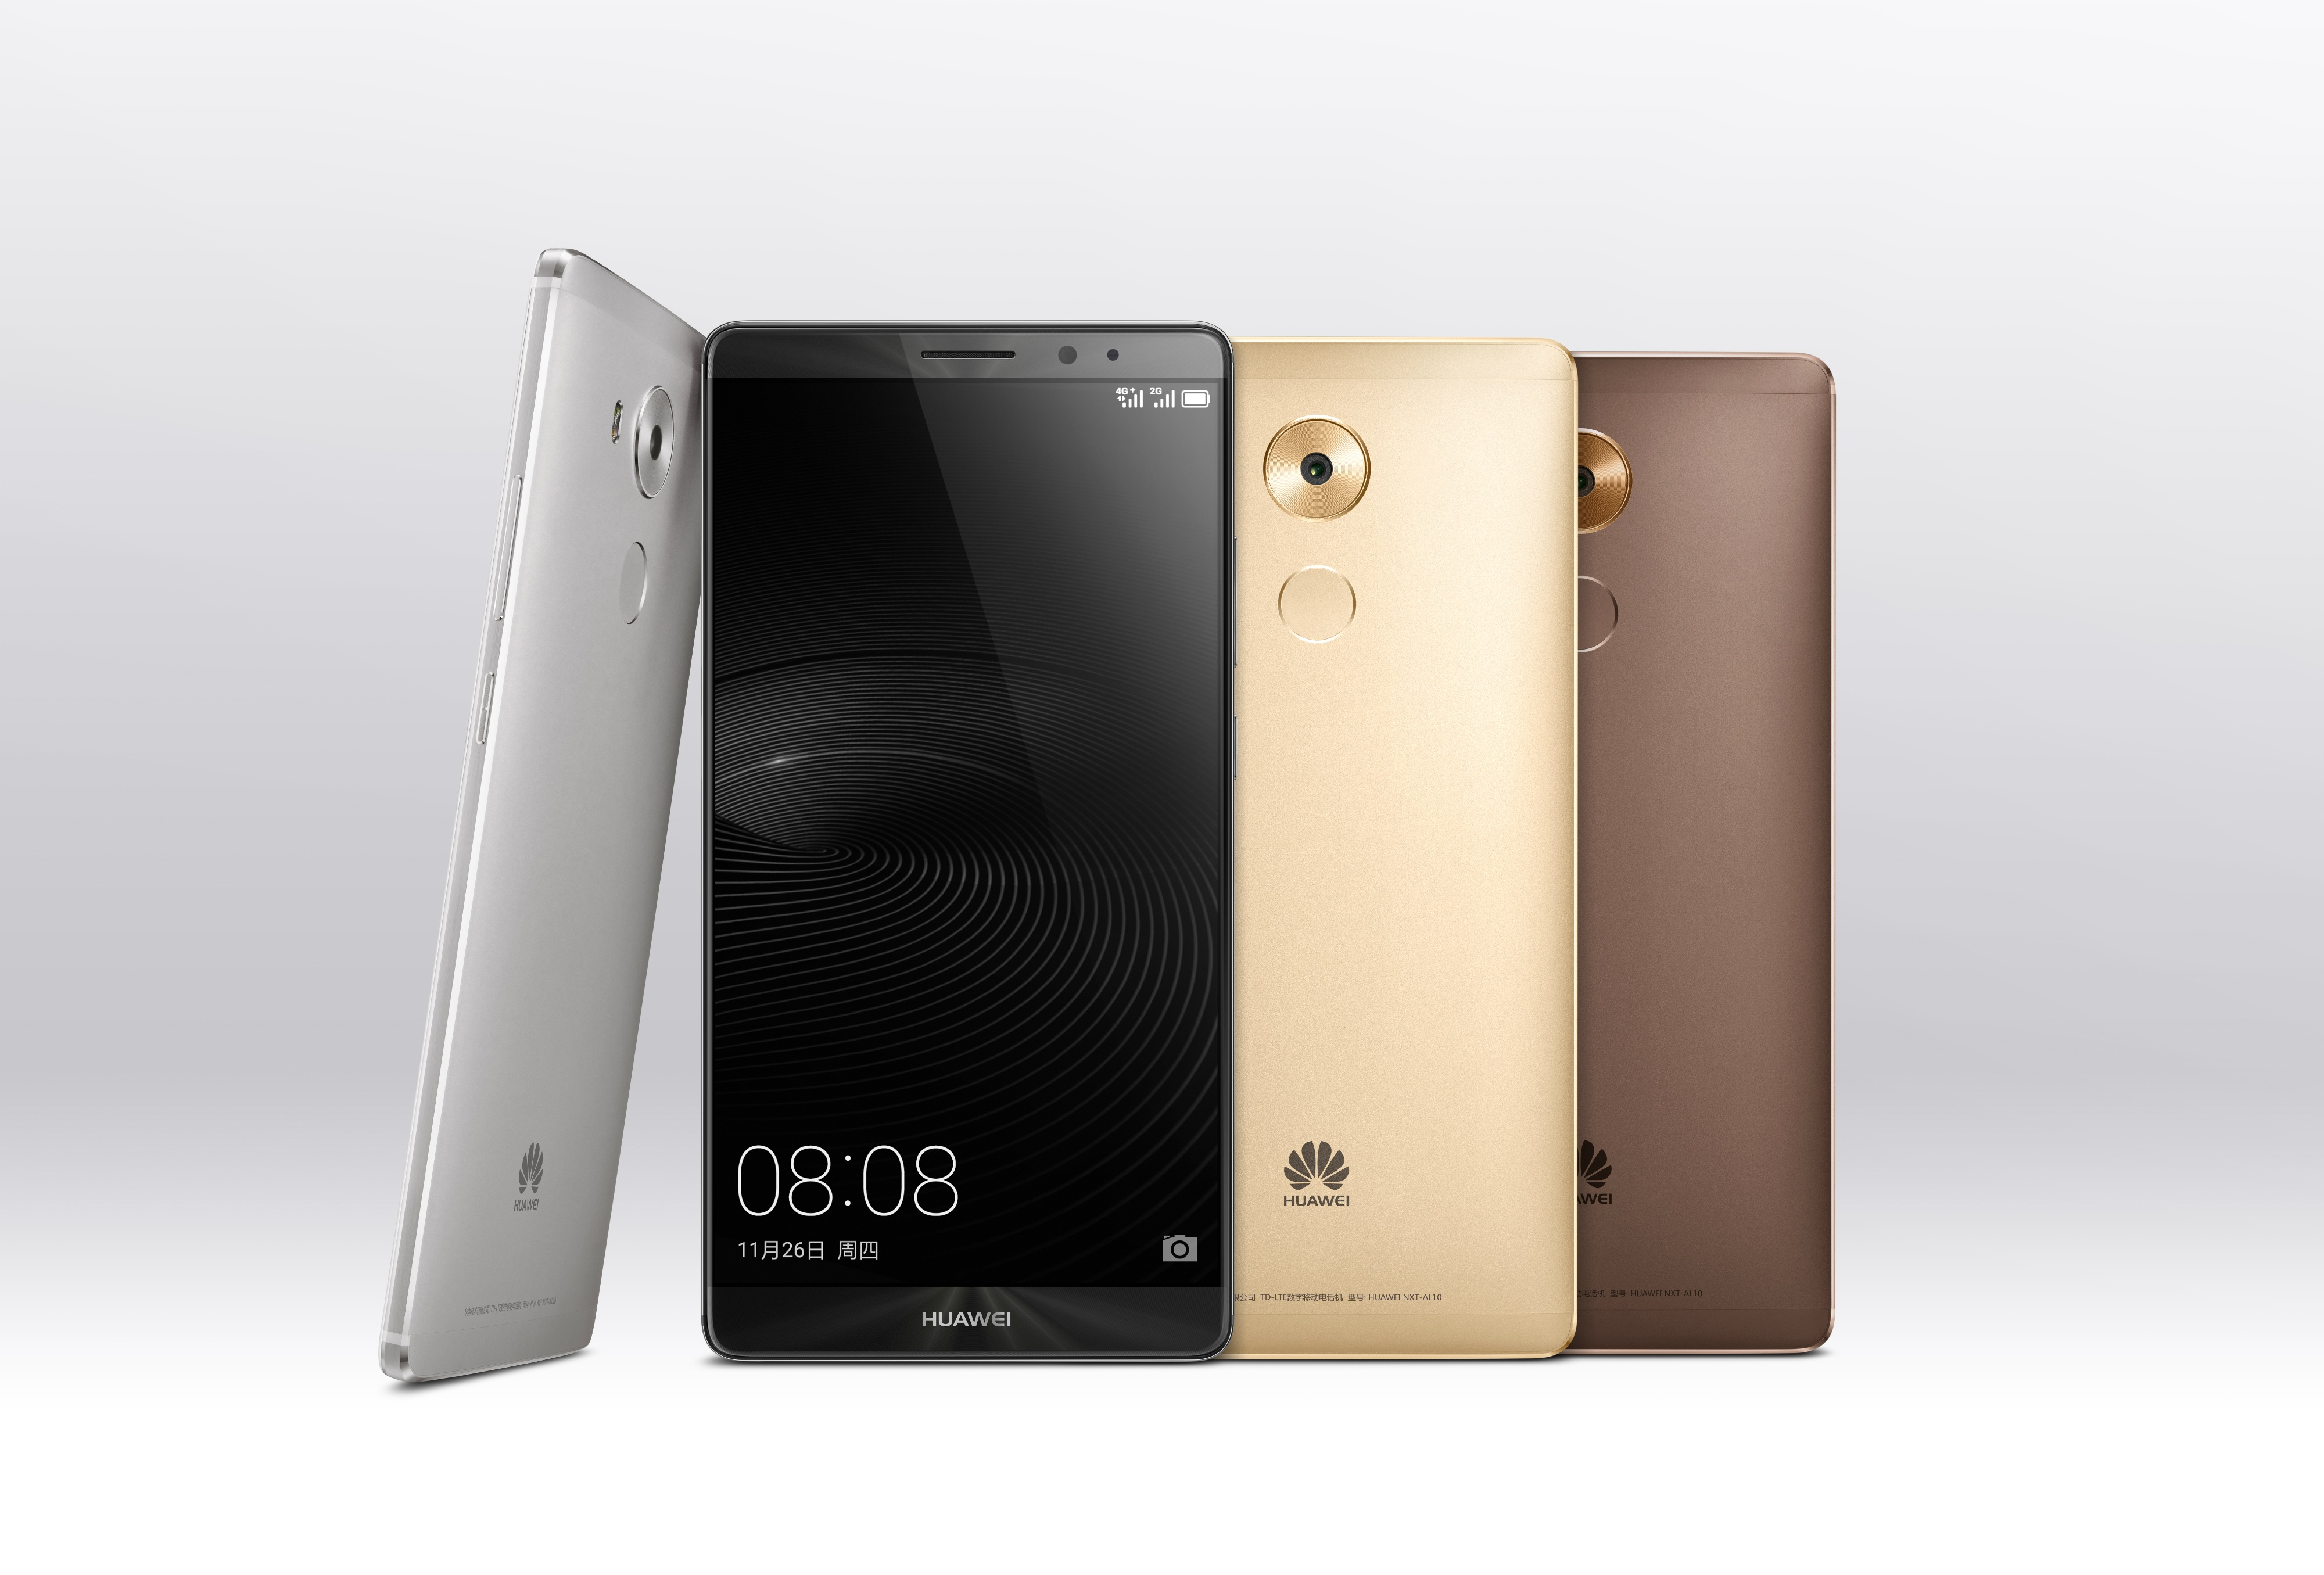 Huawei unveils the veritable, but sleek, monster of a phablet that is the Mate 8